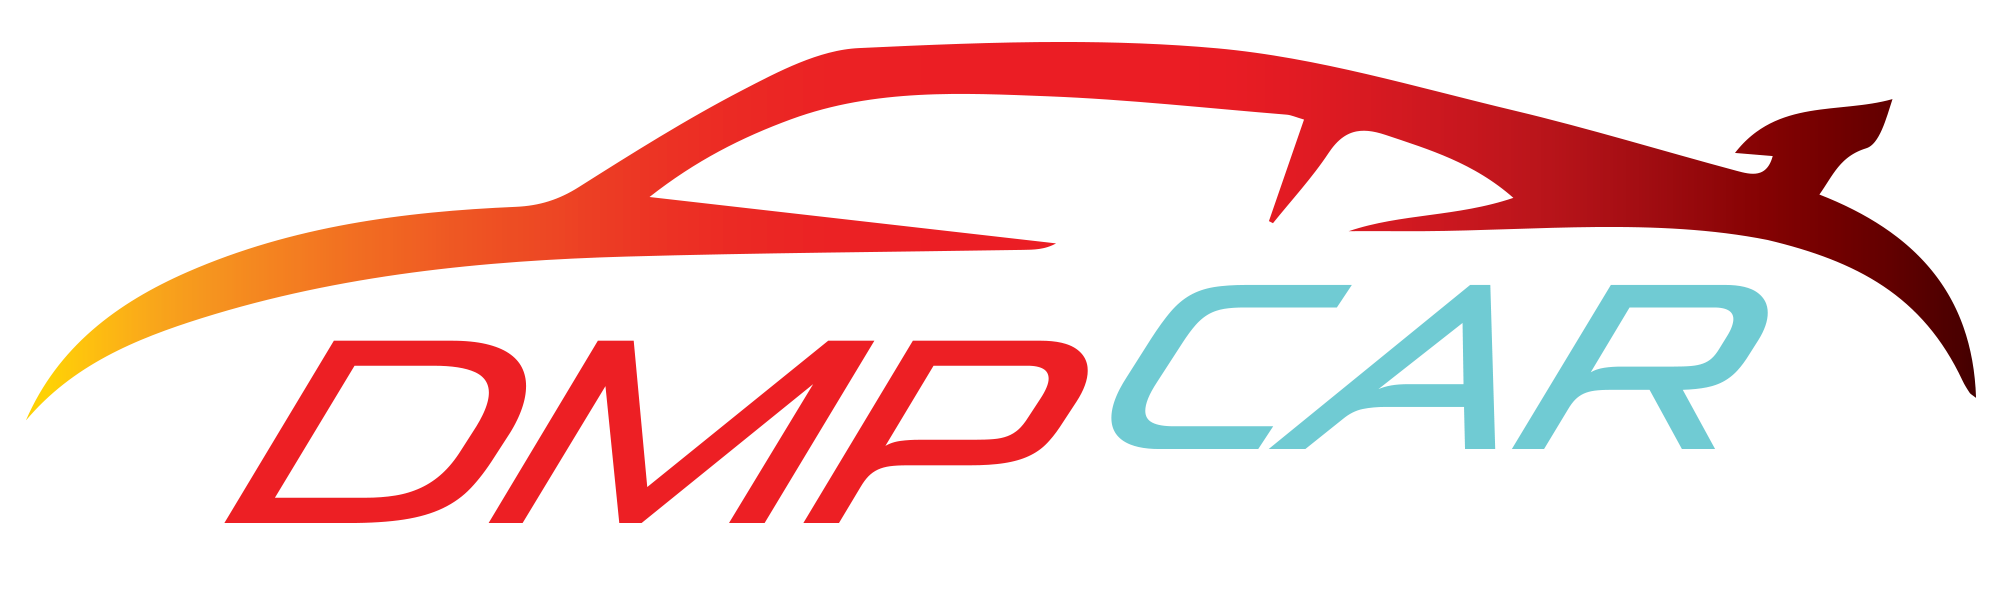 DMP Car Design -- by D Multi Provide Sdn. Bhd.